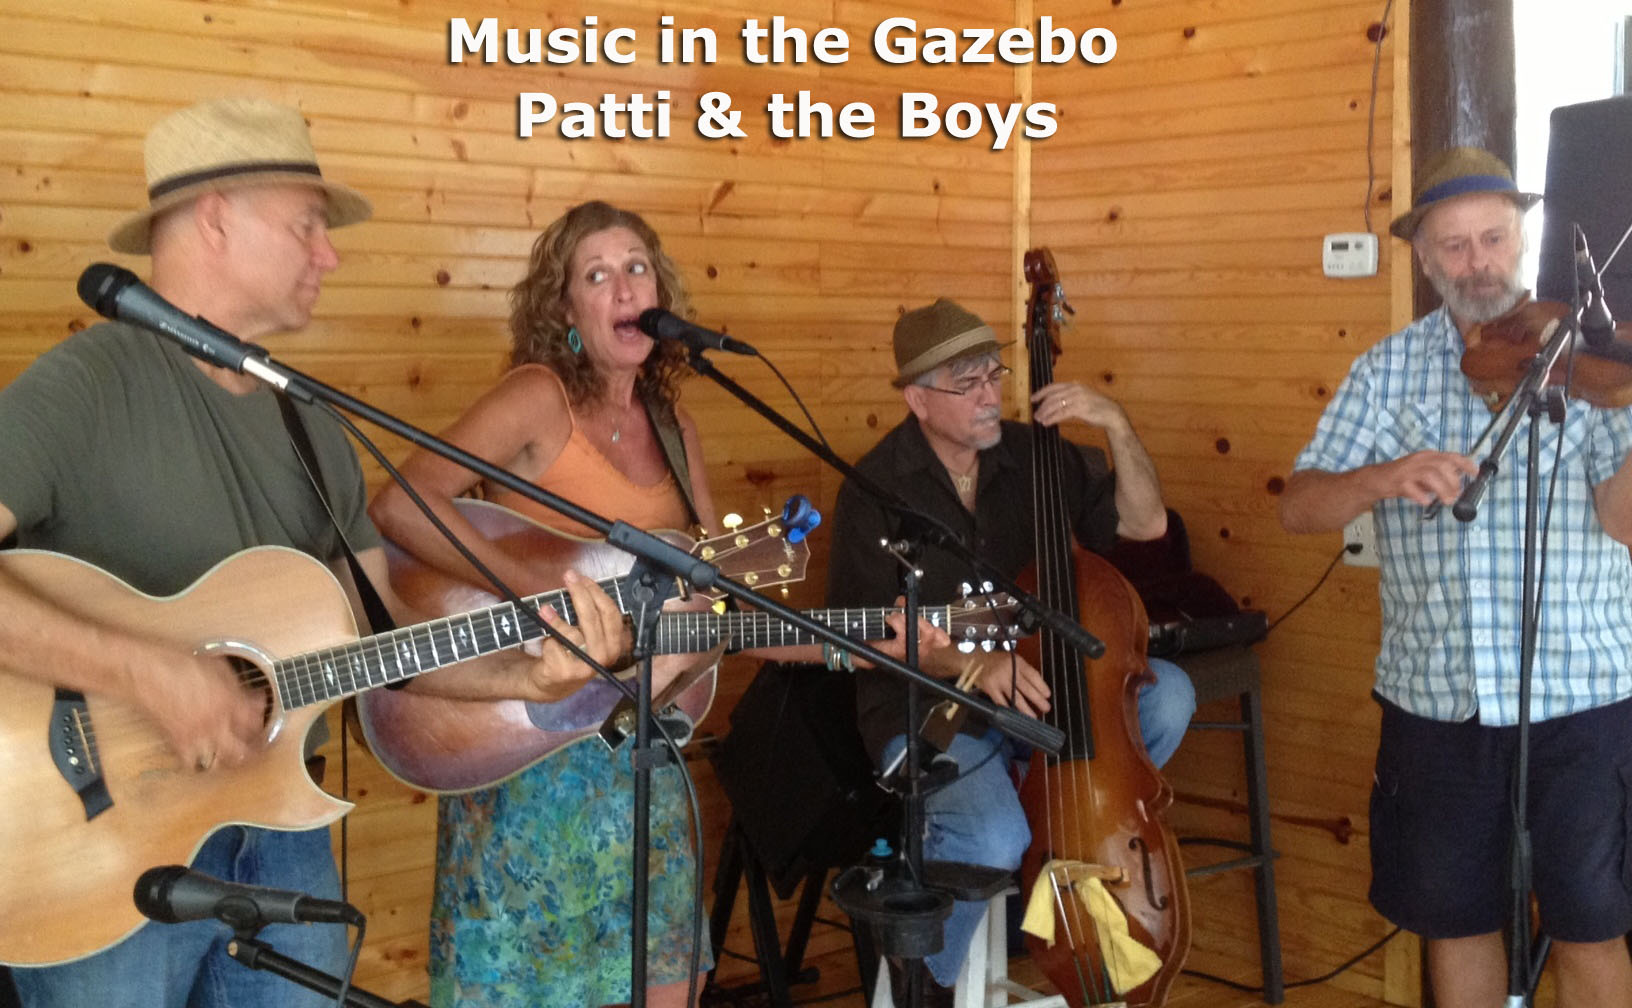 Music in the Gazebo